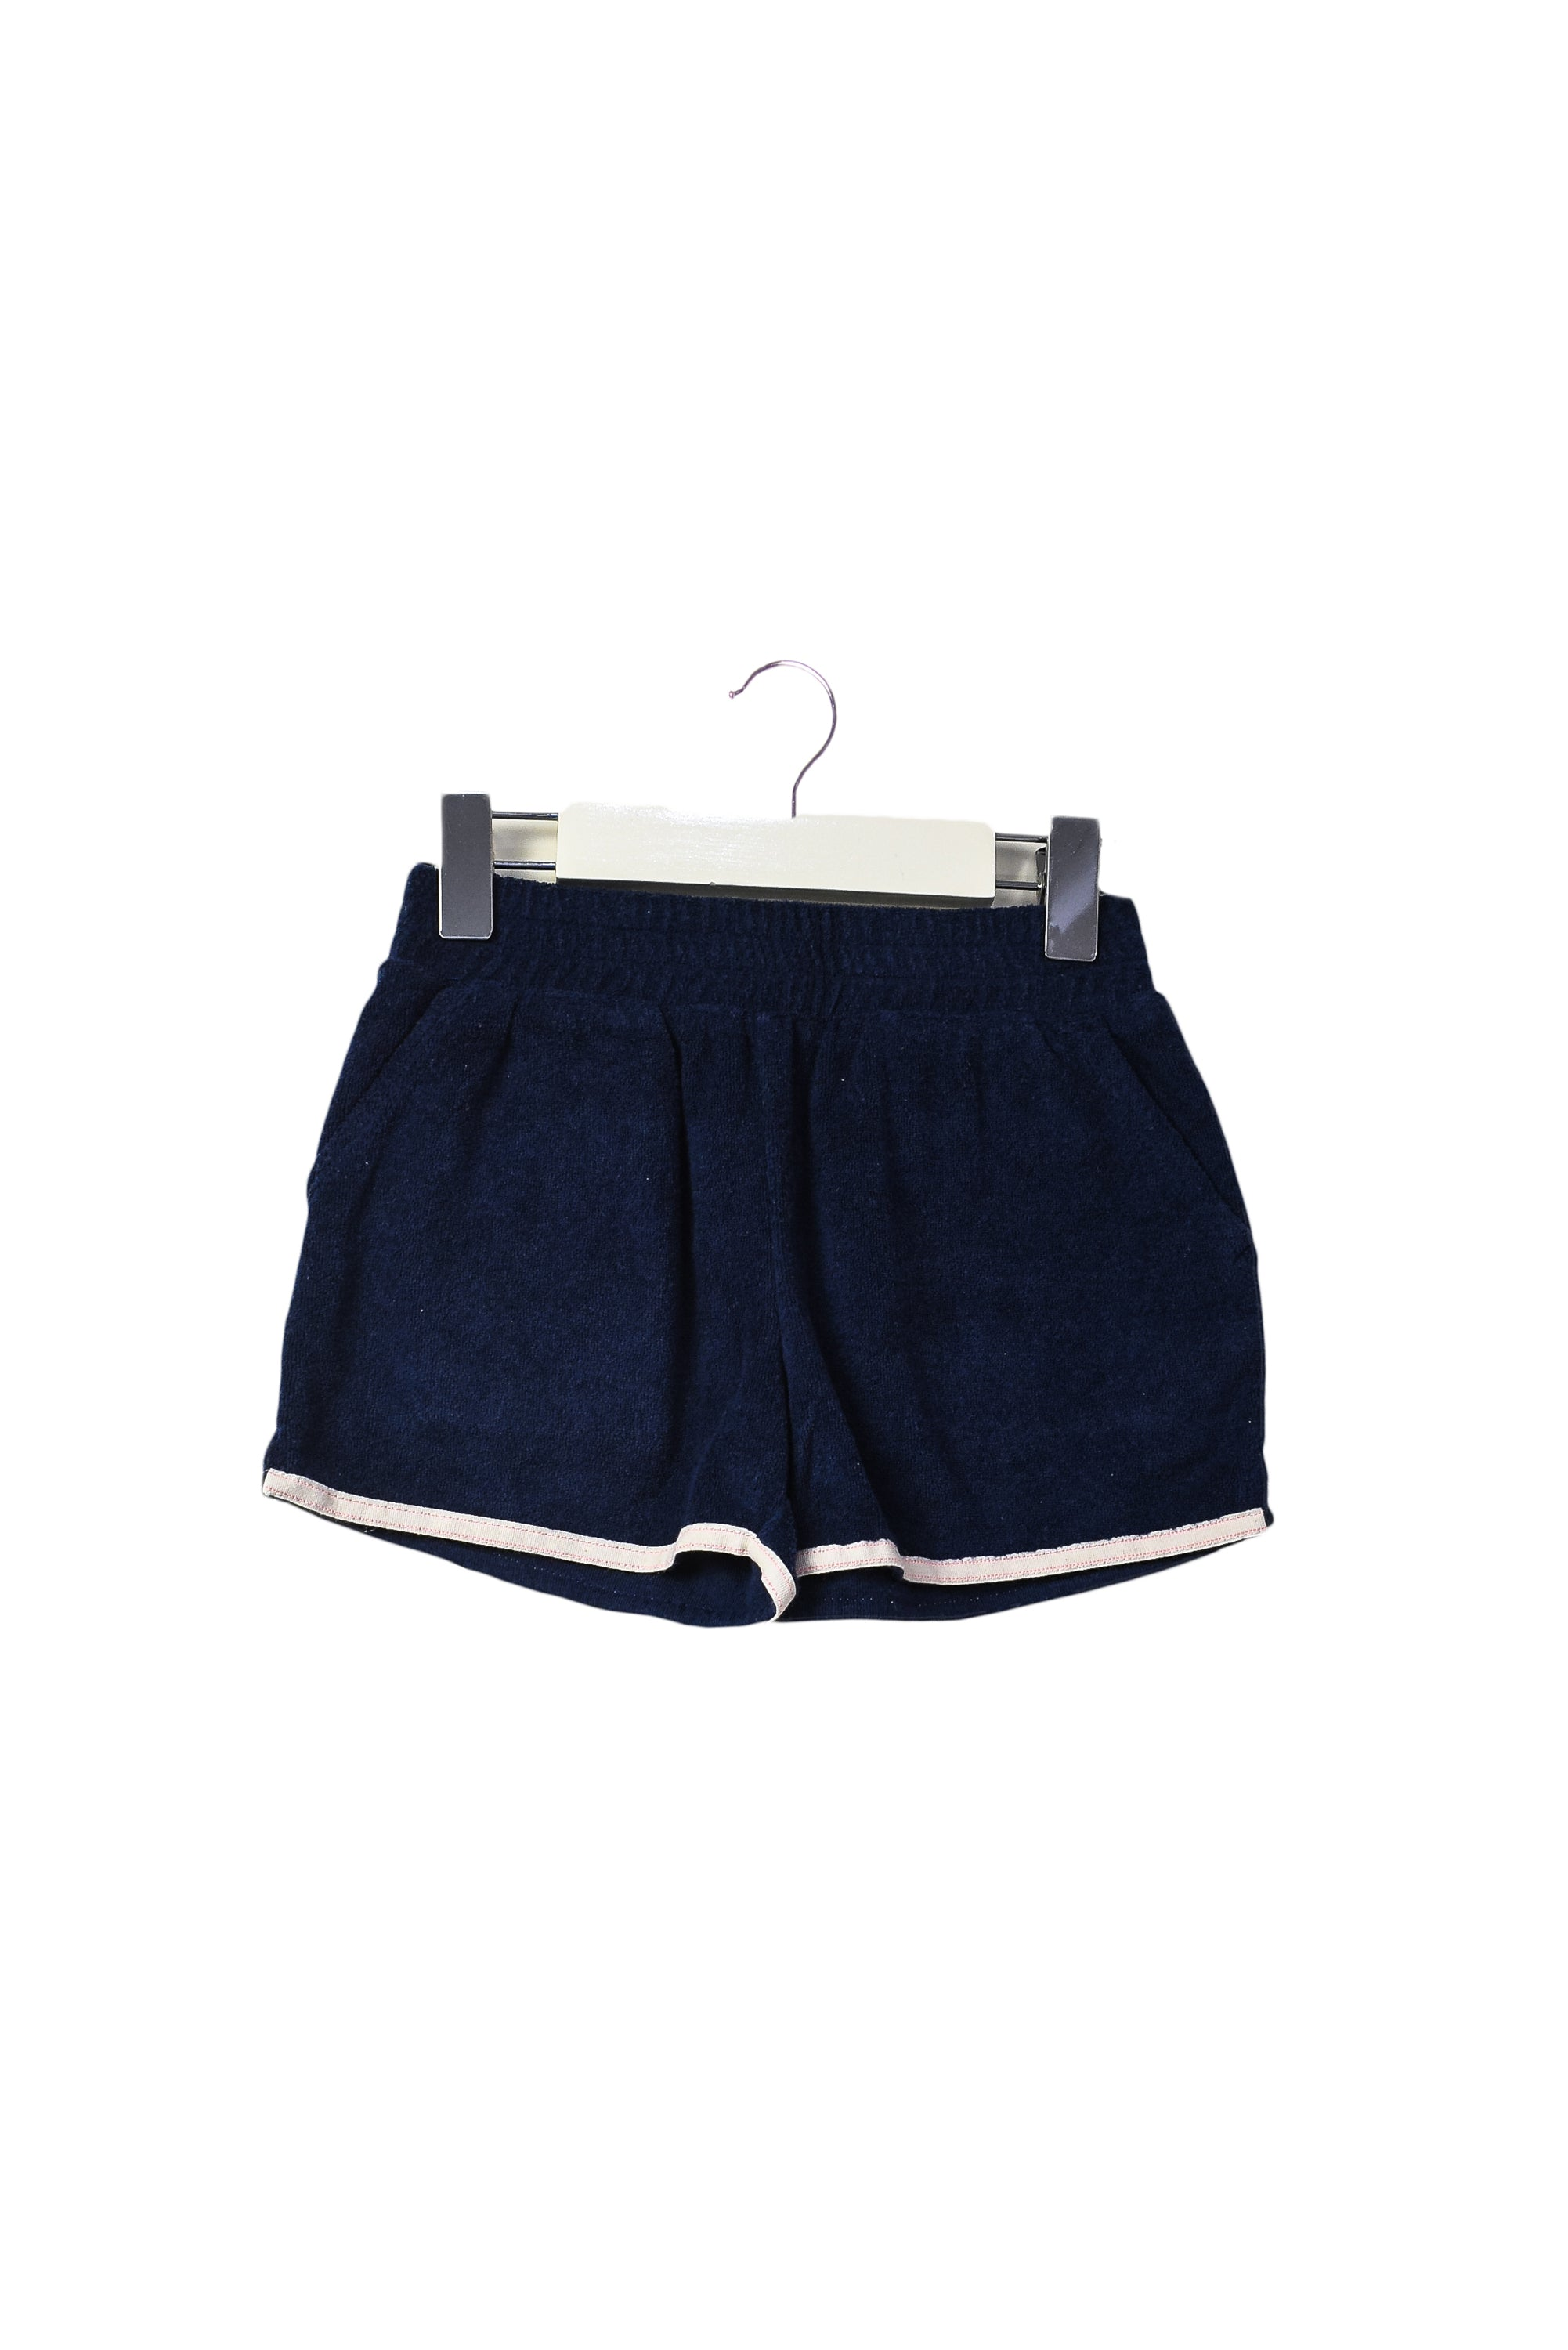 10044318 Crewcuts Kids~Shorts 4T at Retykle